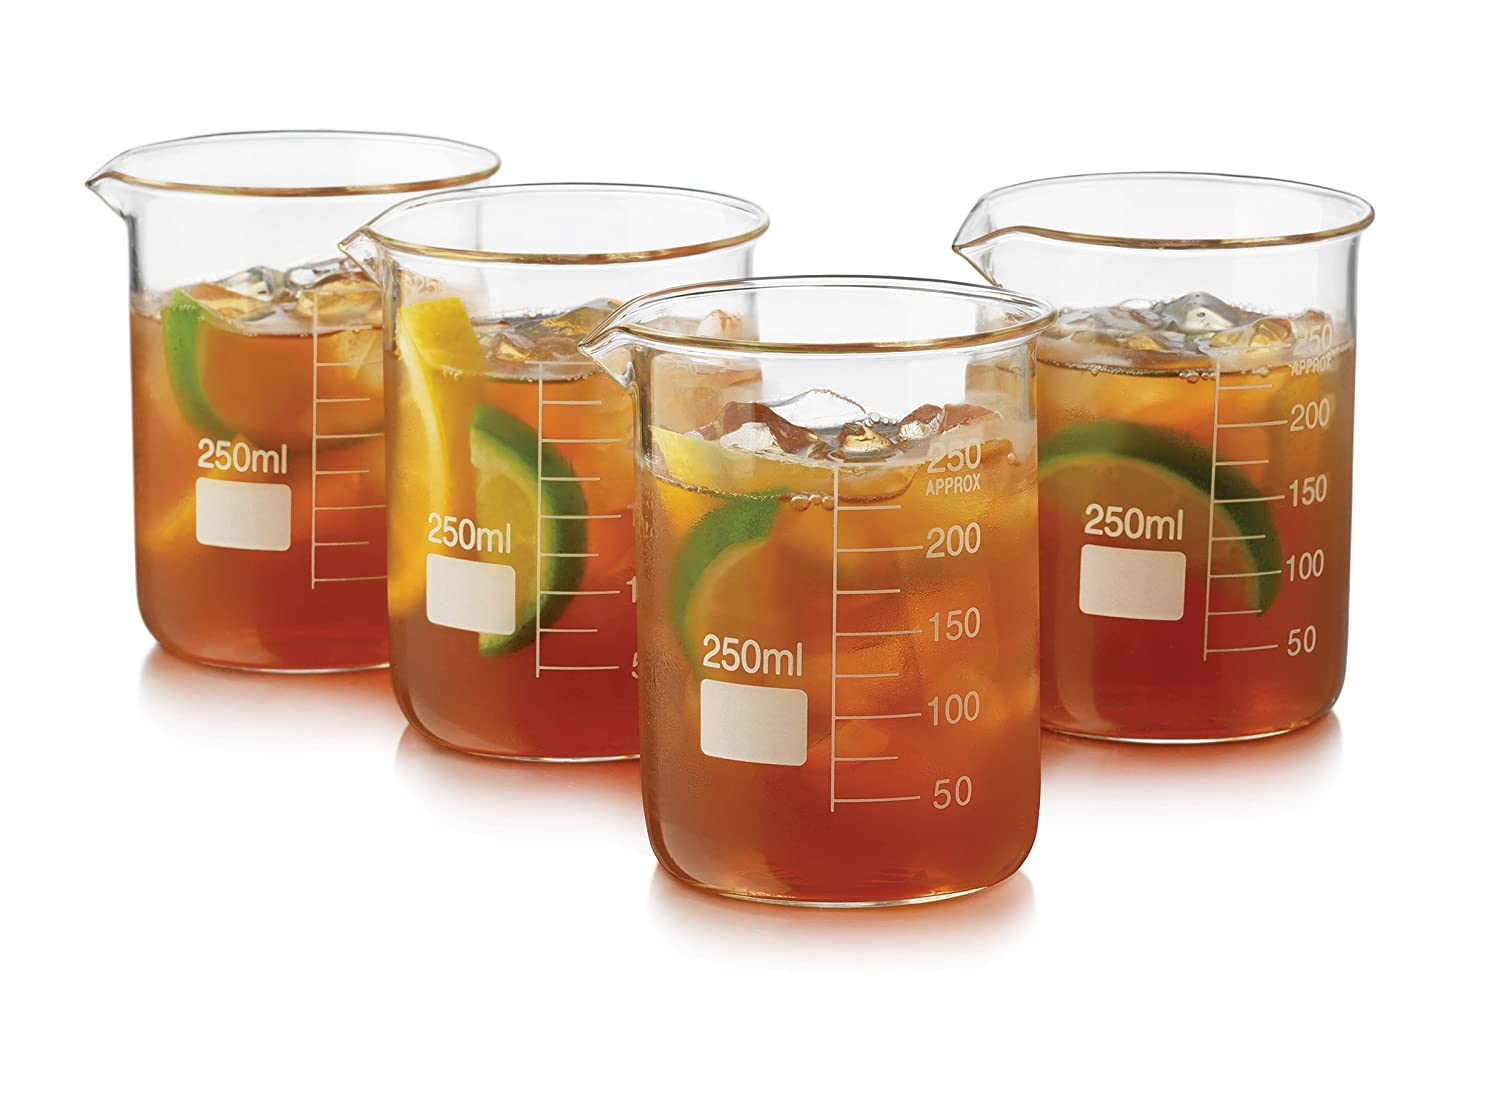 Libbey 4 Piece Beaker Set, Clear